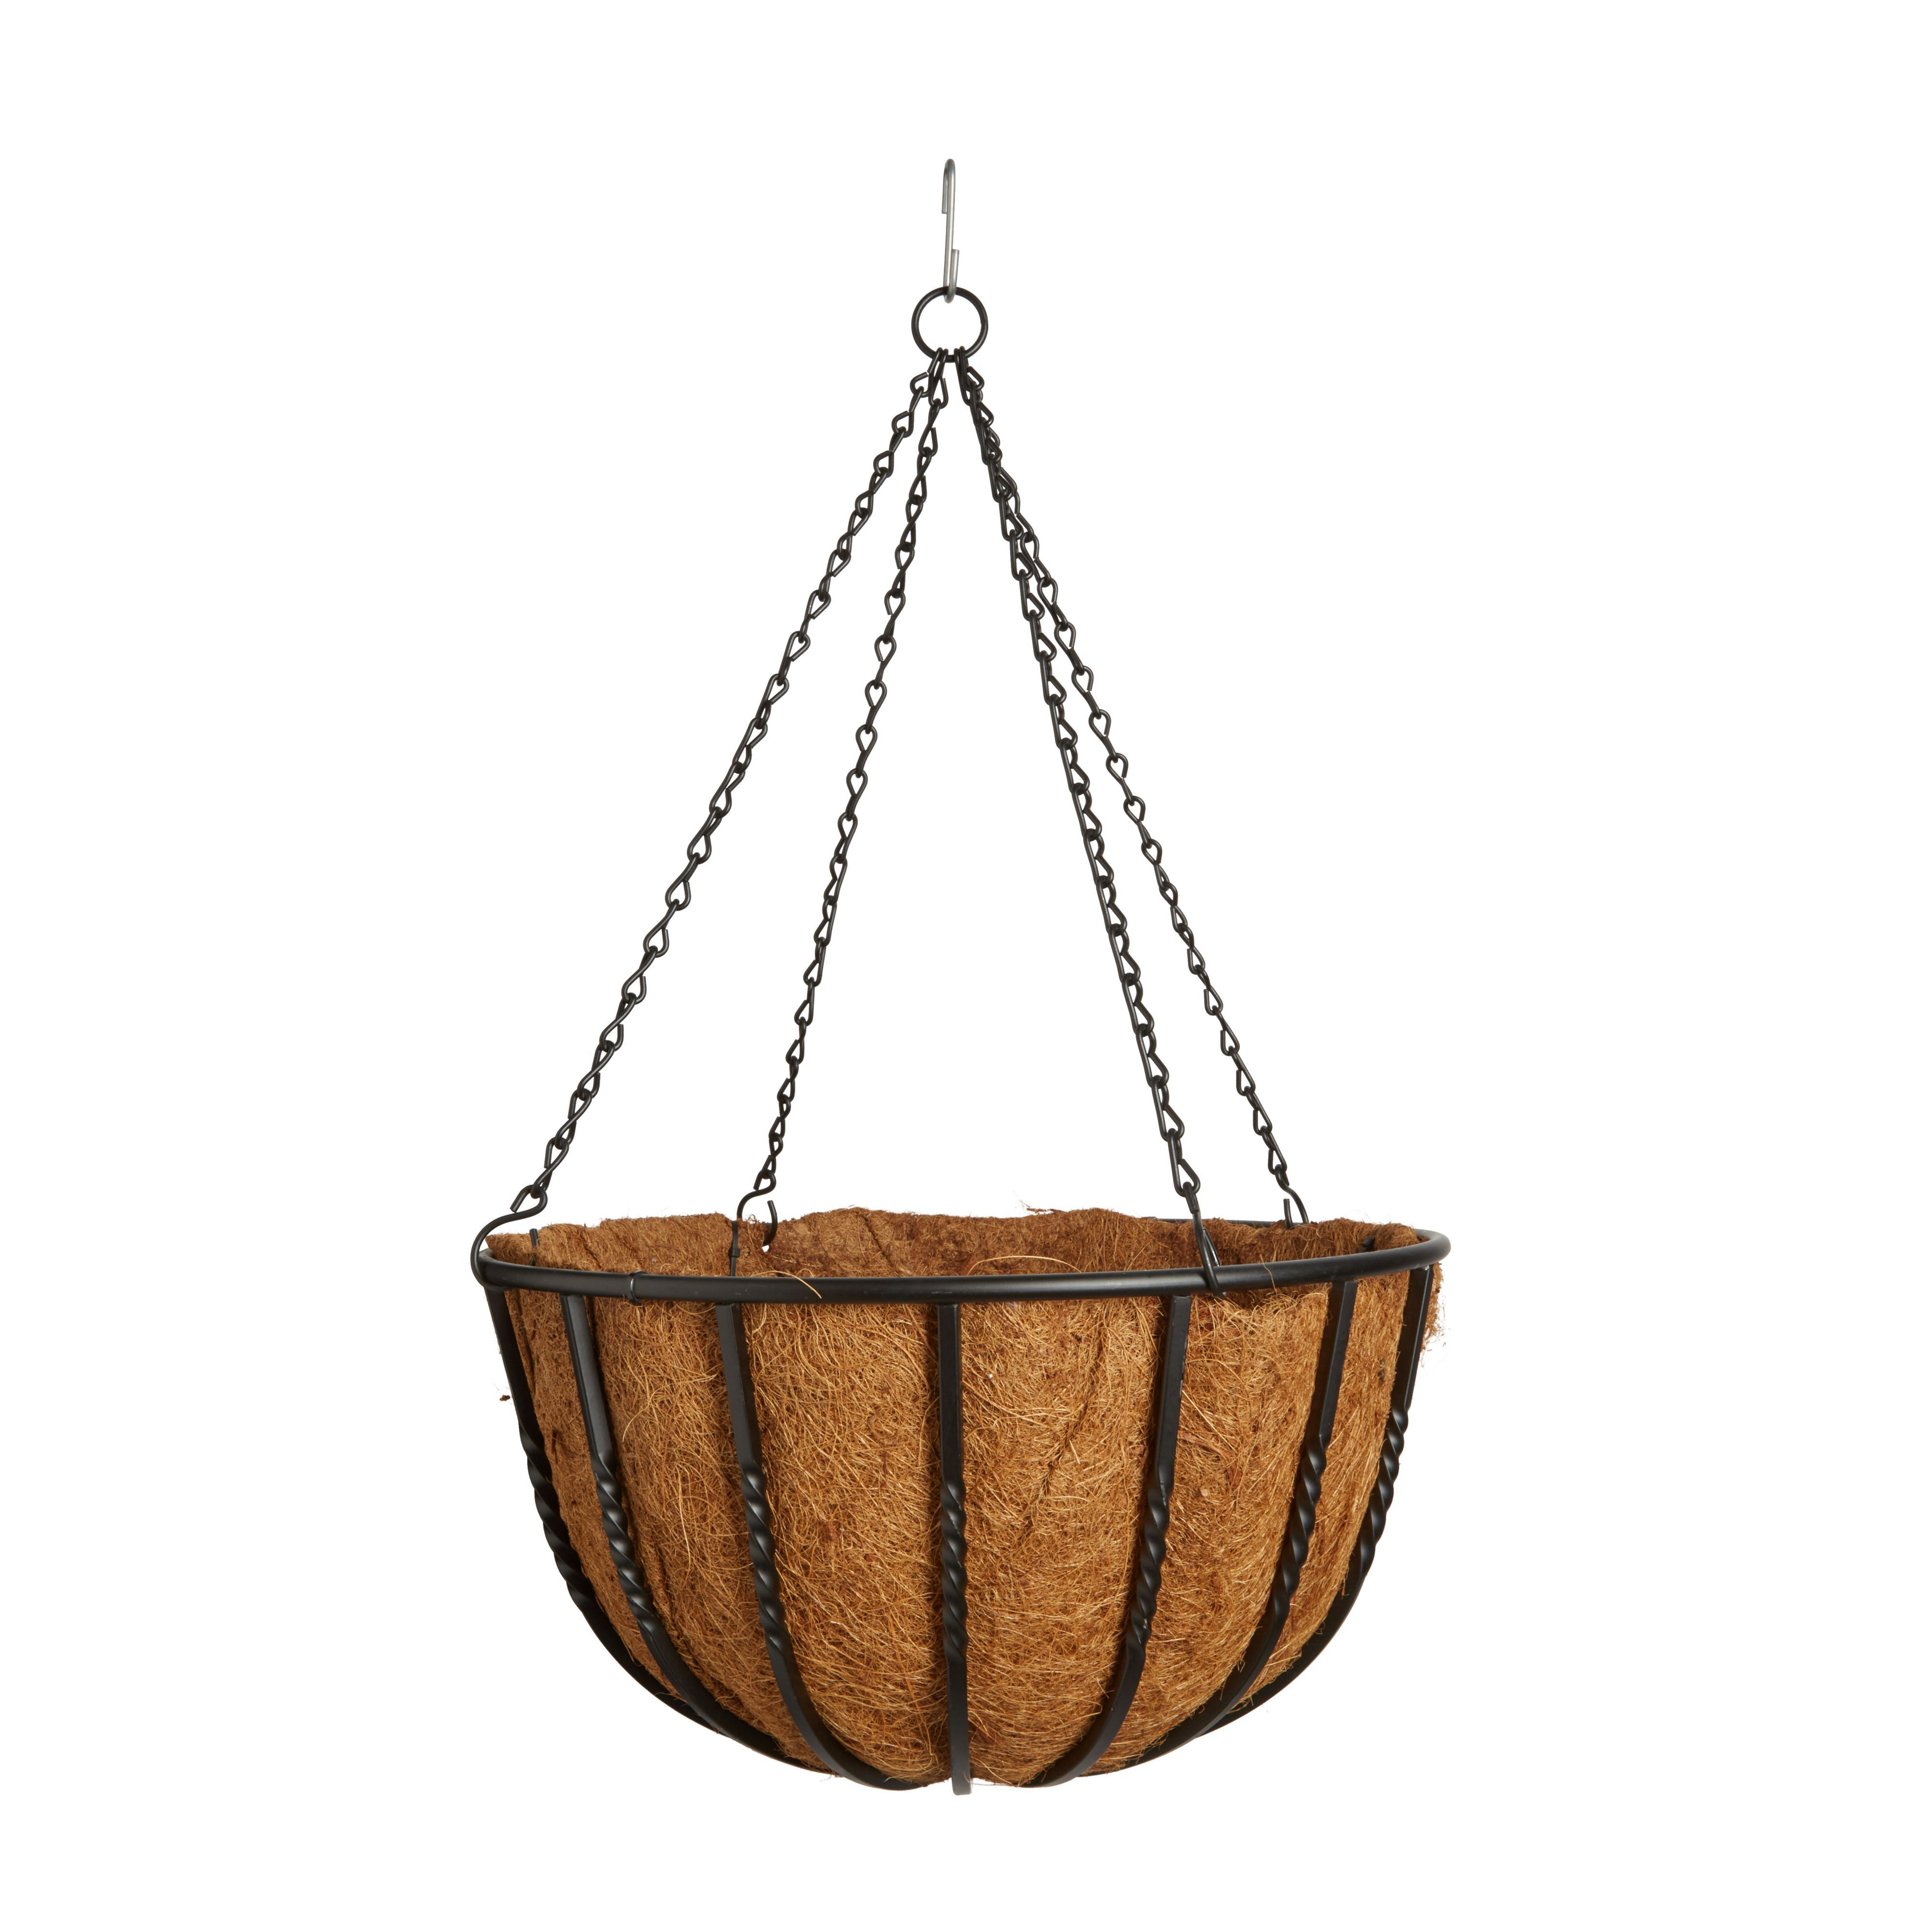 Gardman Wrought Iron Hanging Basket 406.4 mm | Departments ...